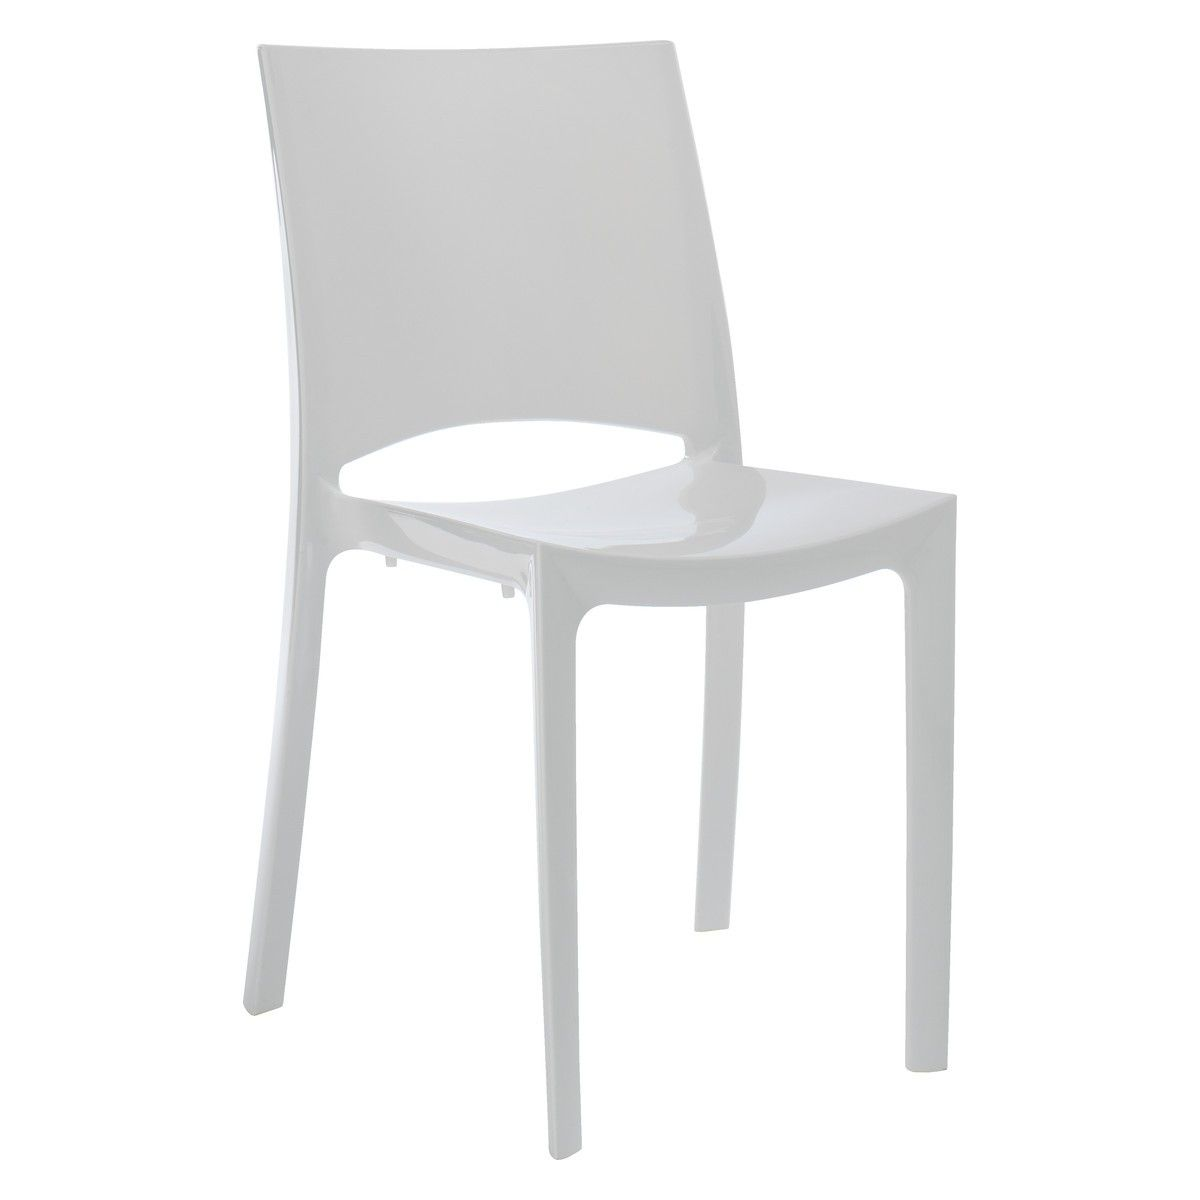 VERNE White Plastic Stackable Dining Chair